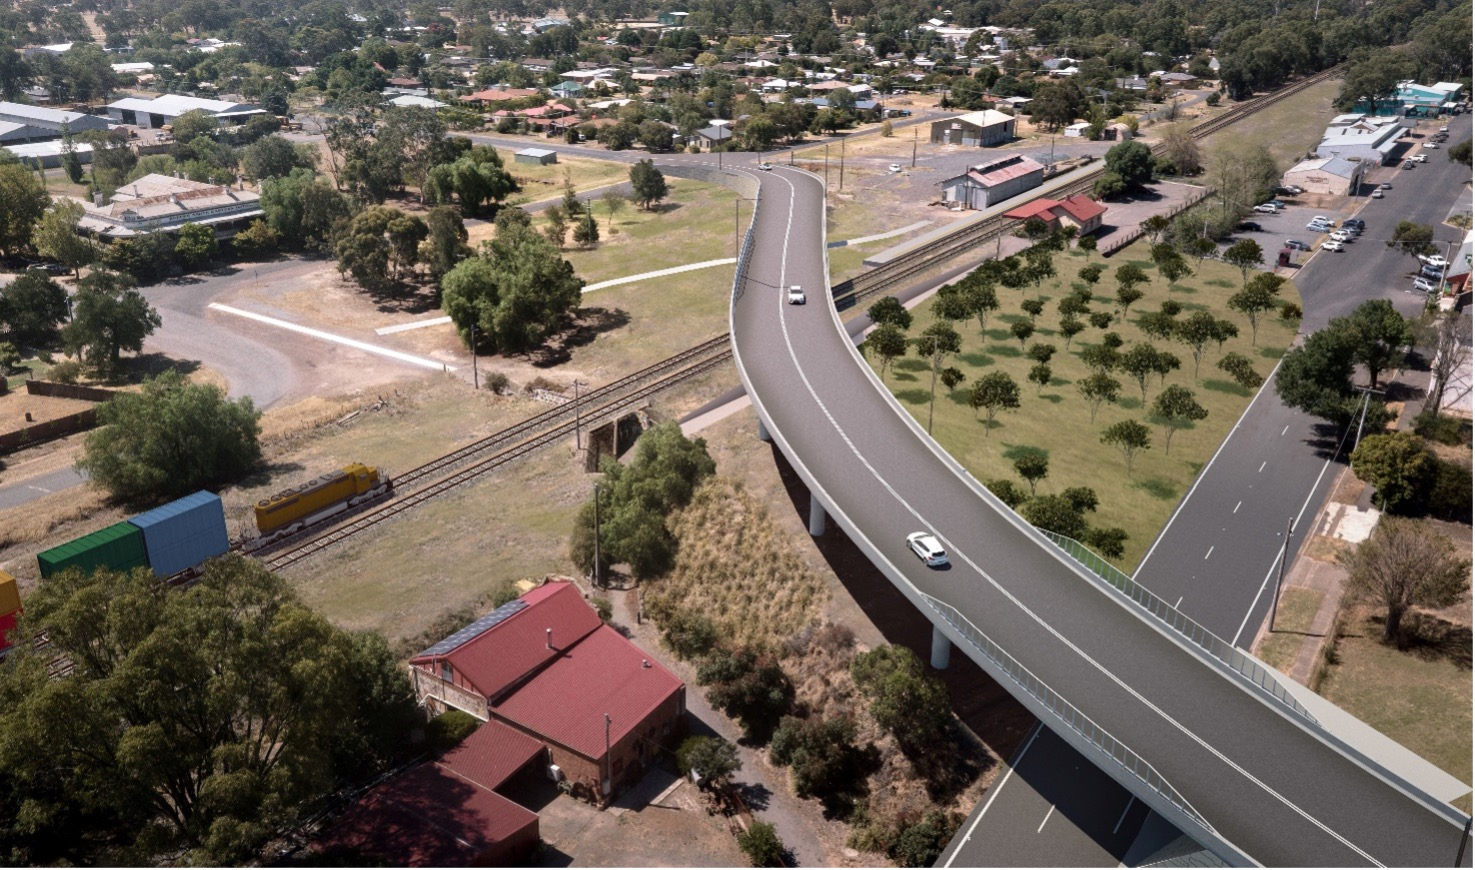 Visualisations of what a new overpass could look like at Euroa